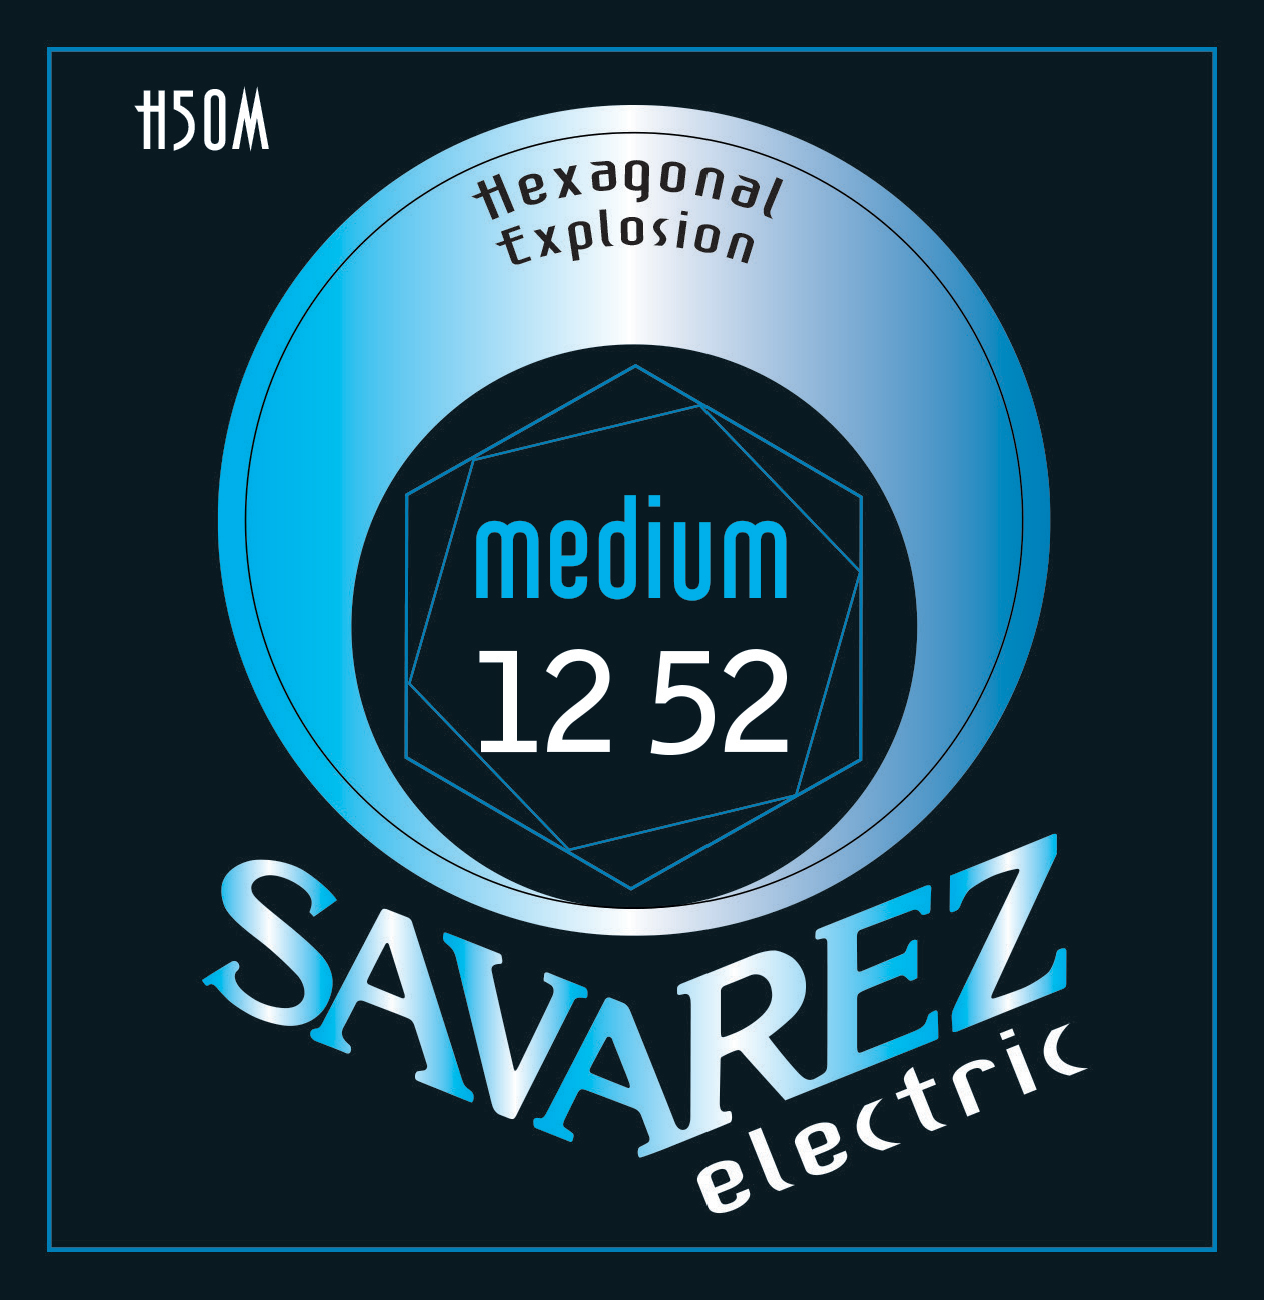 SAVAREZ ELECTRIC HEXAGONAL EXPLOSION H50M